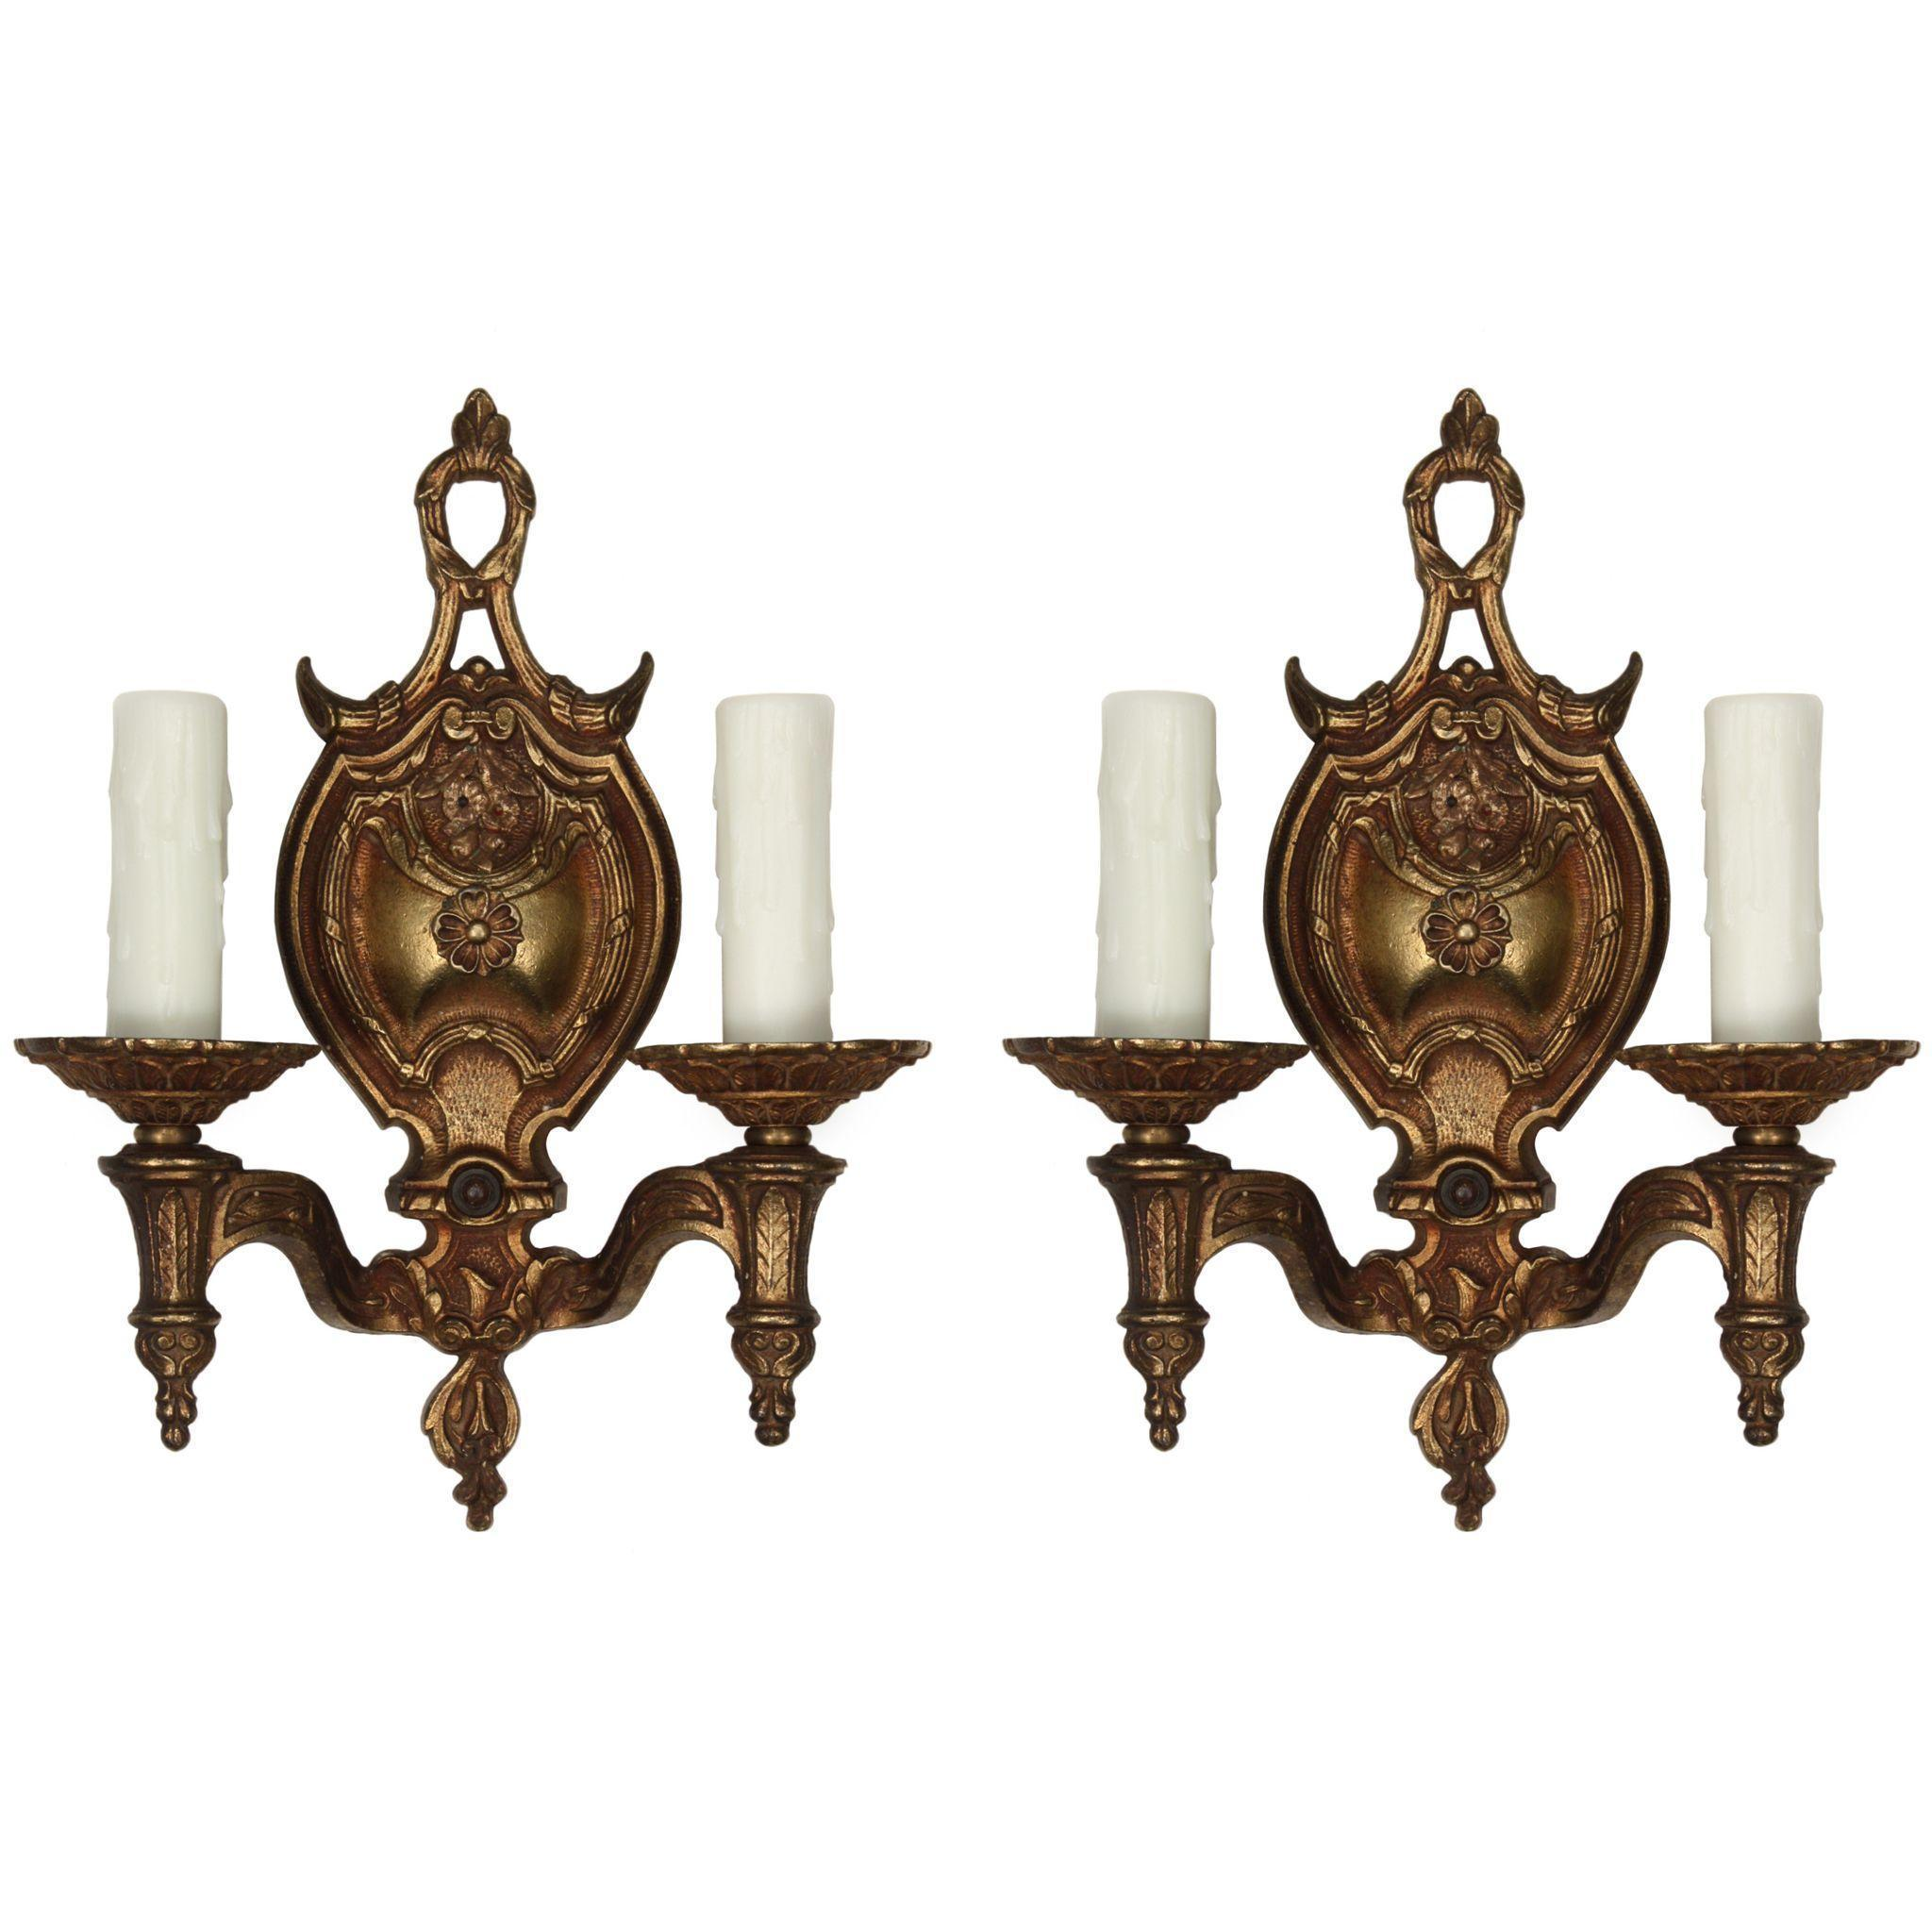 Pair of Antique Neoclassical Double-Arm Sconces, Early 1900s